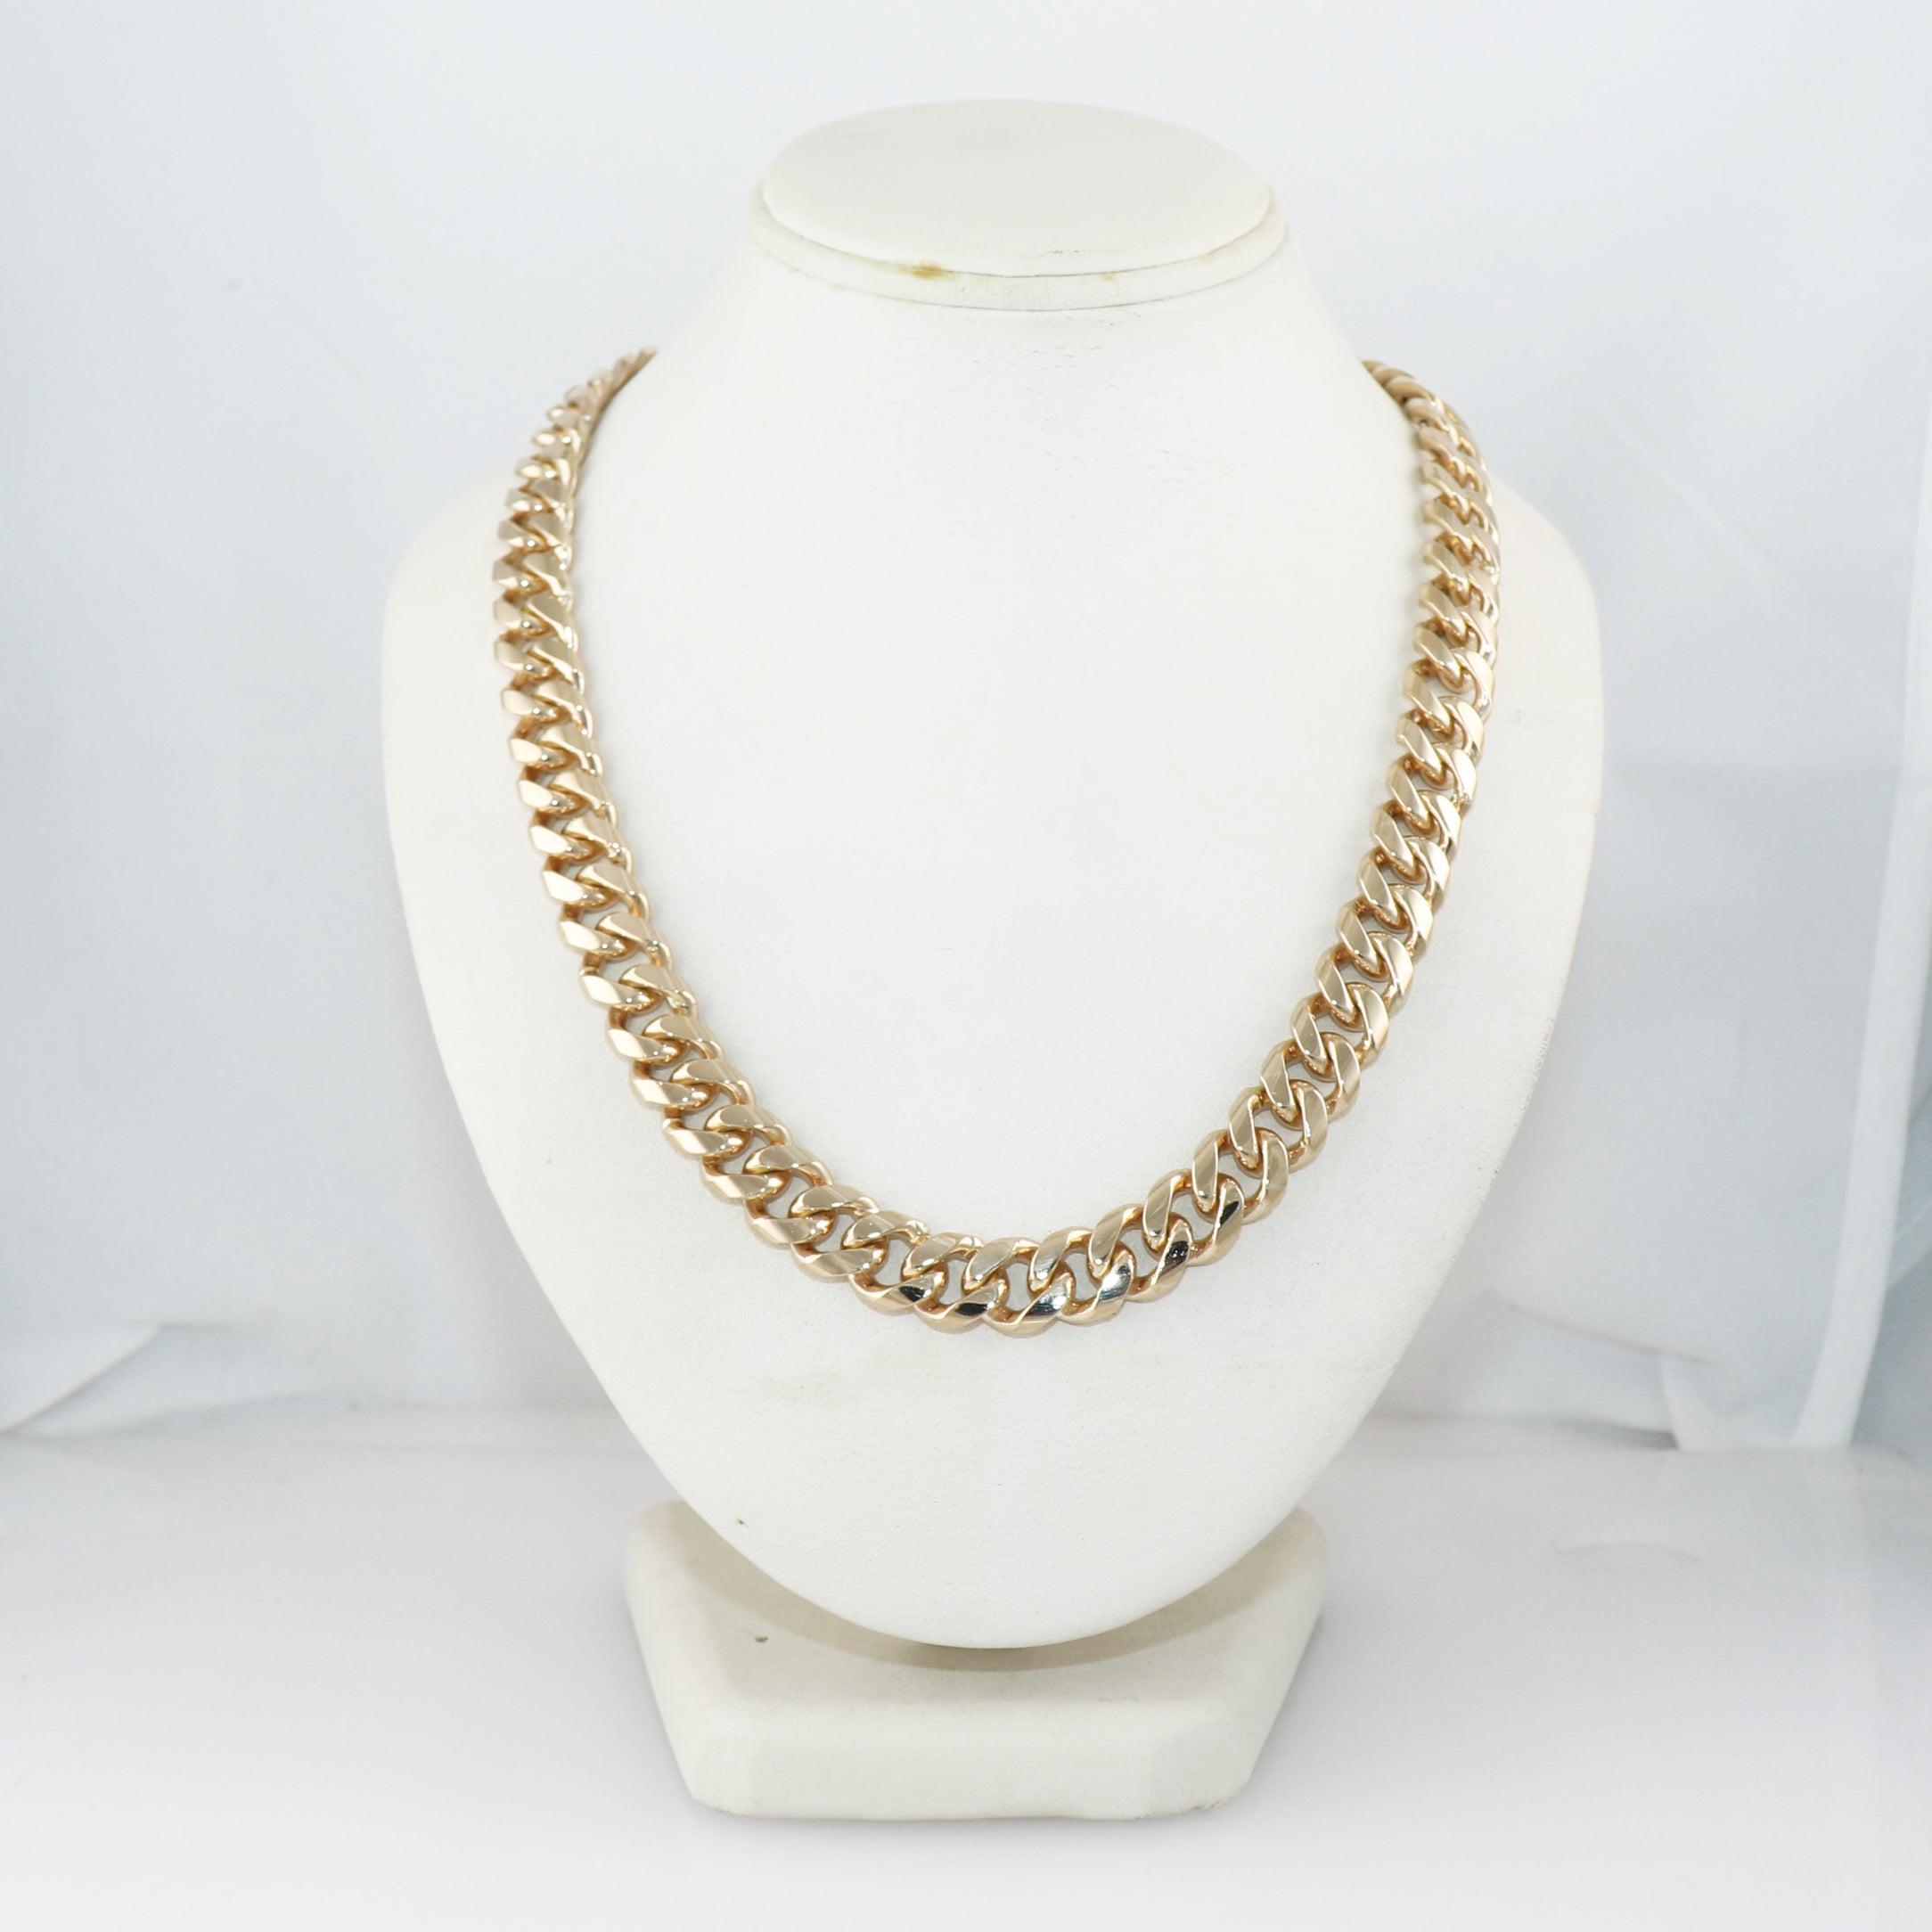 "Modern 181g 14k Yellow Gold Cuban Link 24"" Chain Necklace"